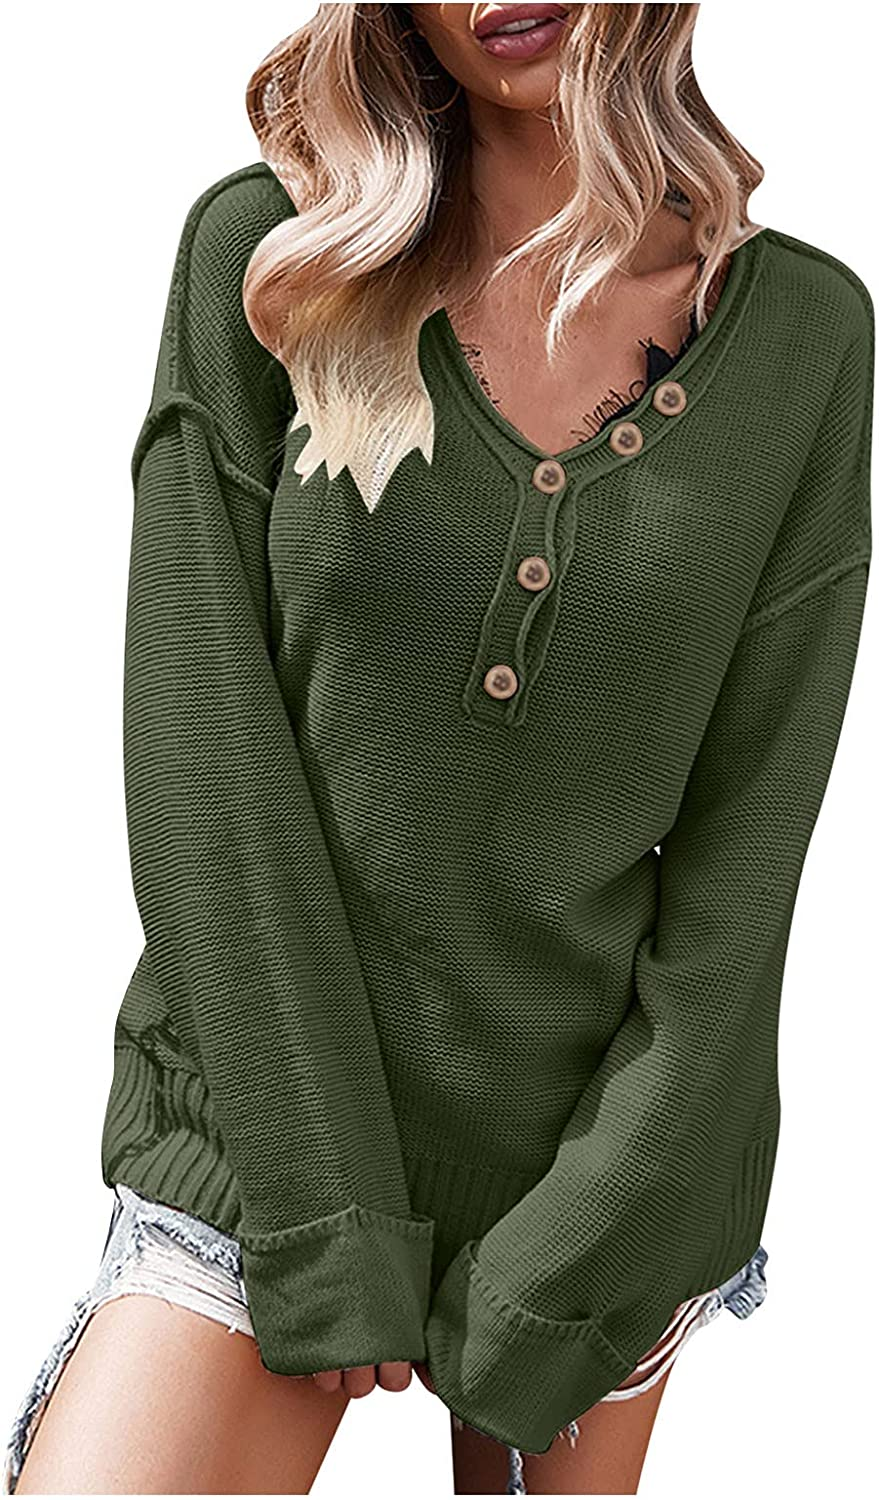 BEUU Women's Pullover Sweater Casual Loose Long Sleeve V Neck Button Up Knitted Sweater Solid Color Sweatshirt Tops